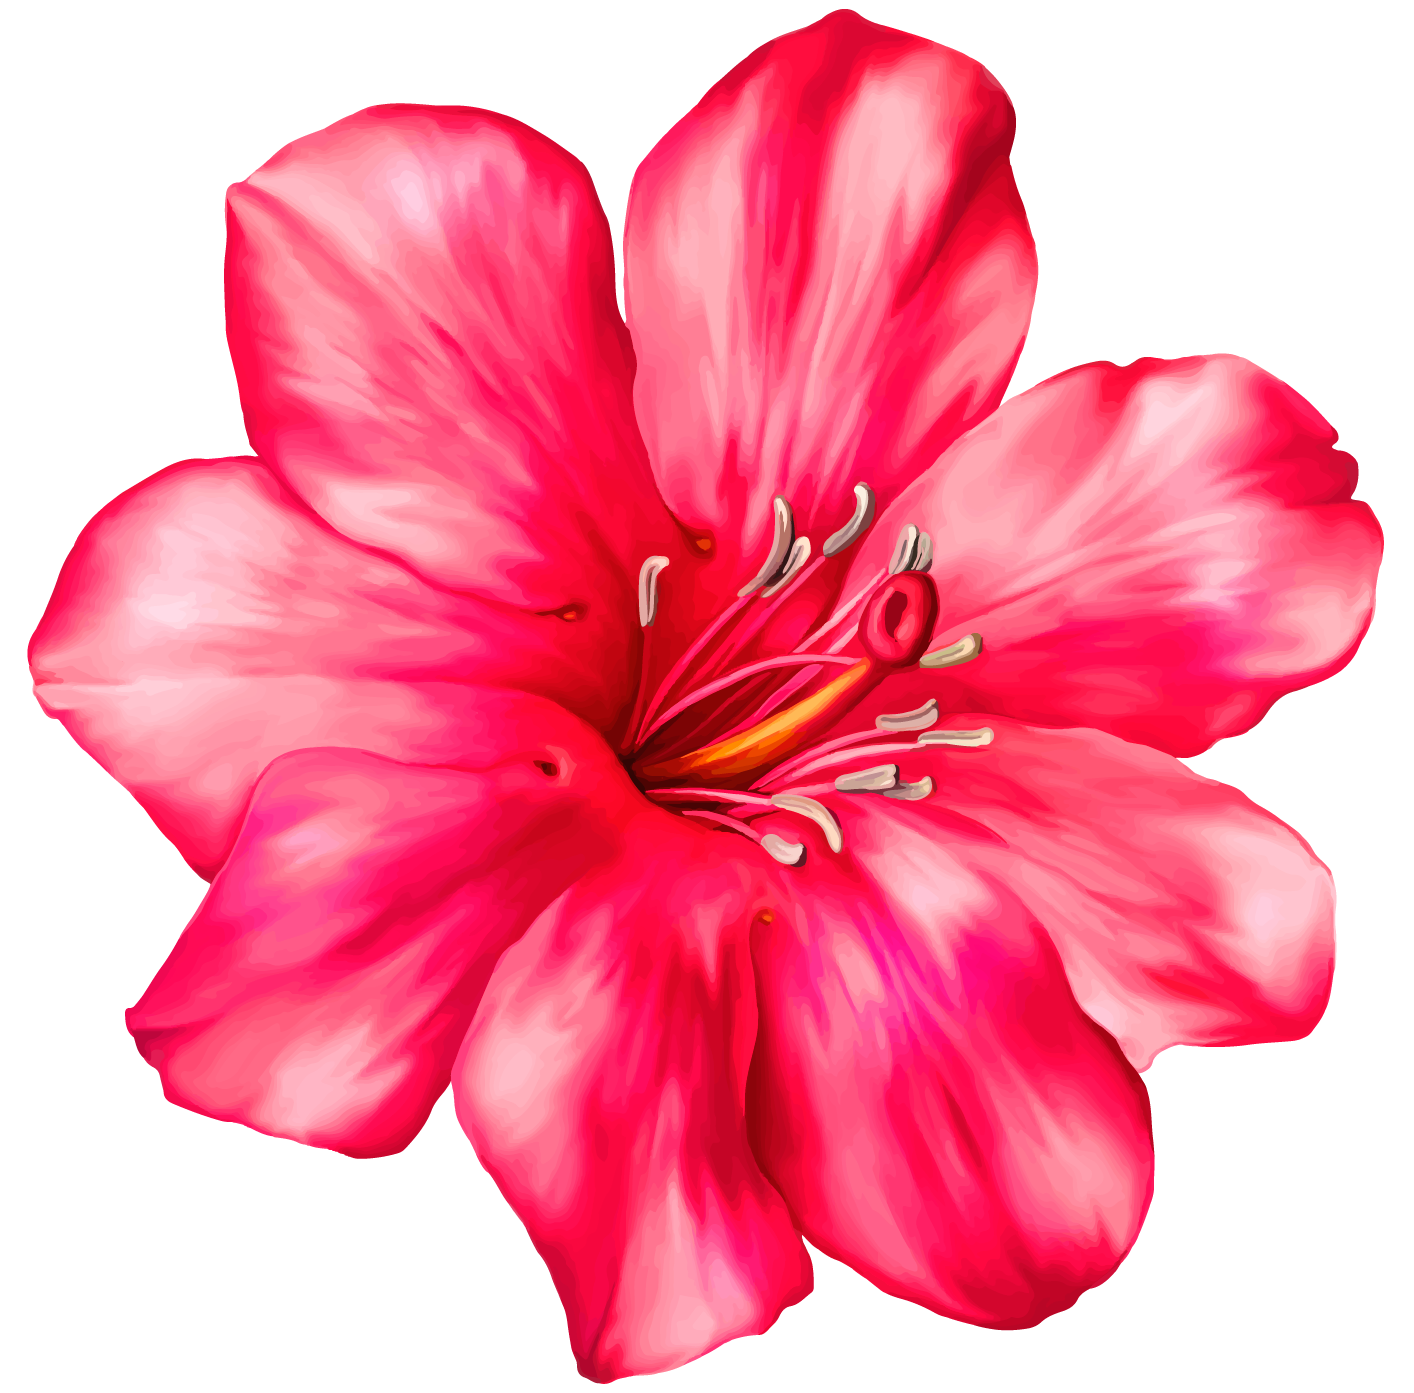 Tropical pink flower png. Exotic clipart picture gallery